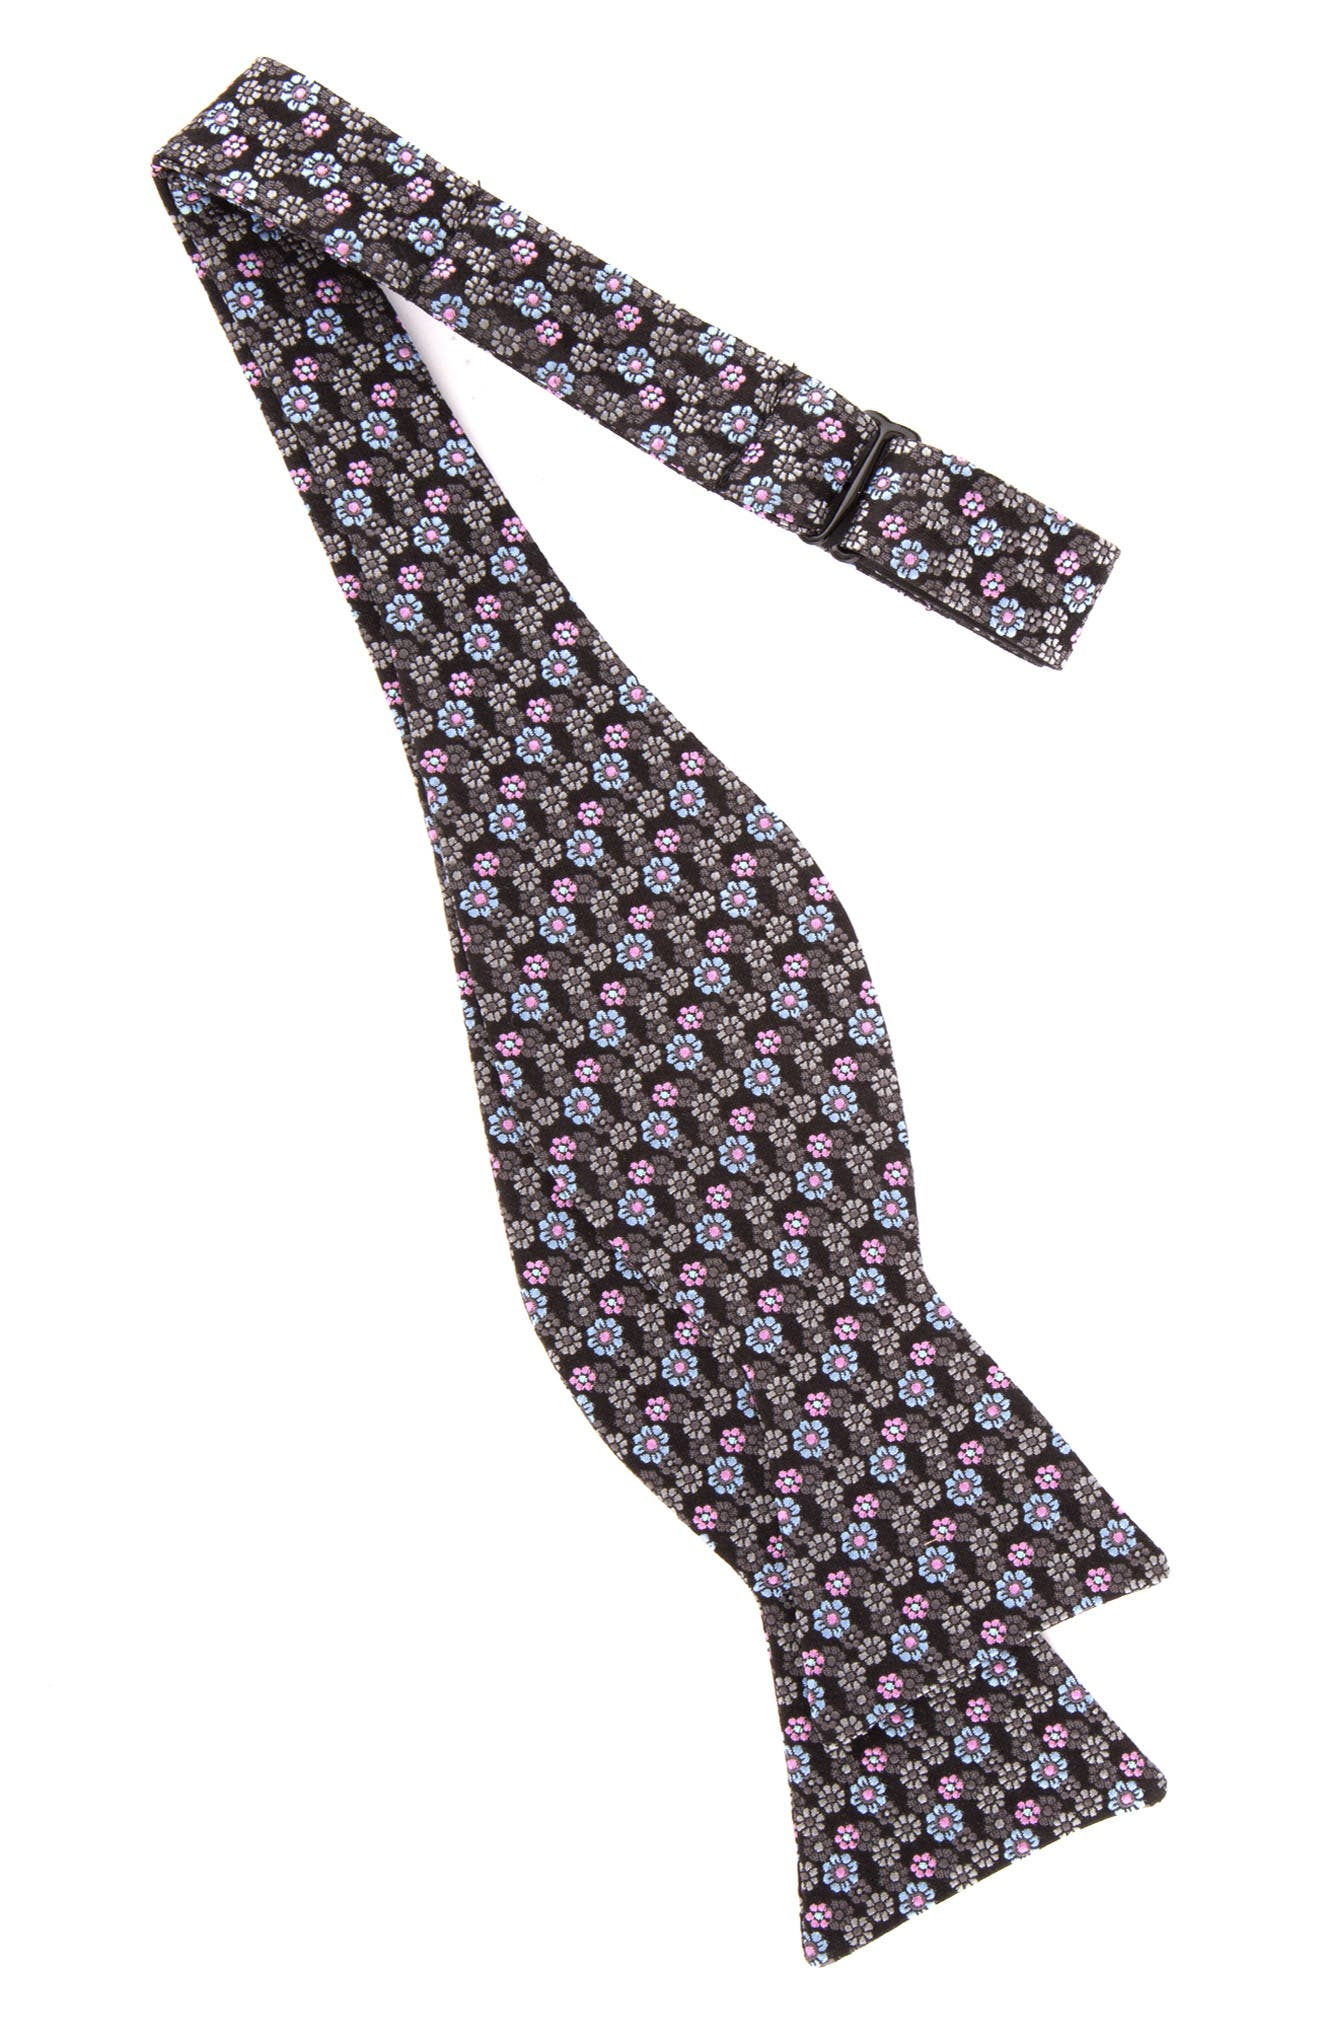 TED BAKER LONDON, Floral Silk Bow Tie, Alternate thumbnail 2, color, CHARCOAL